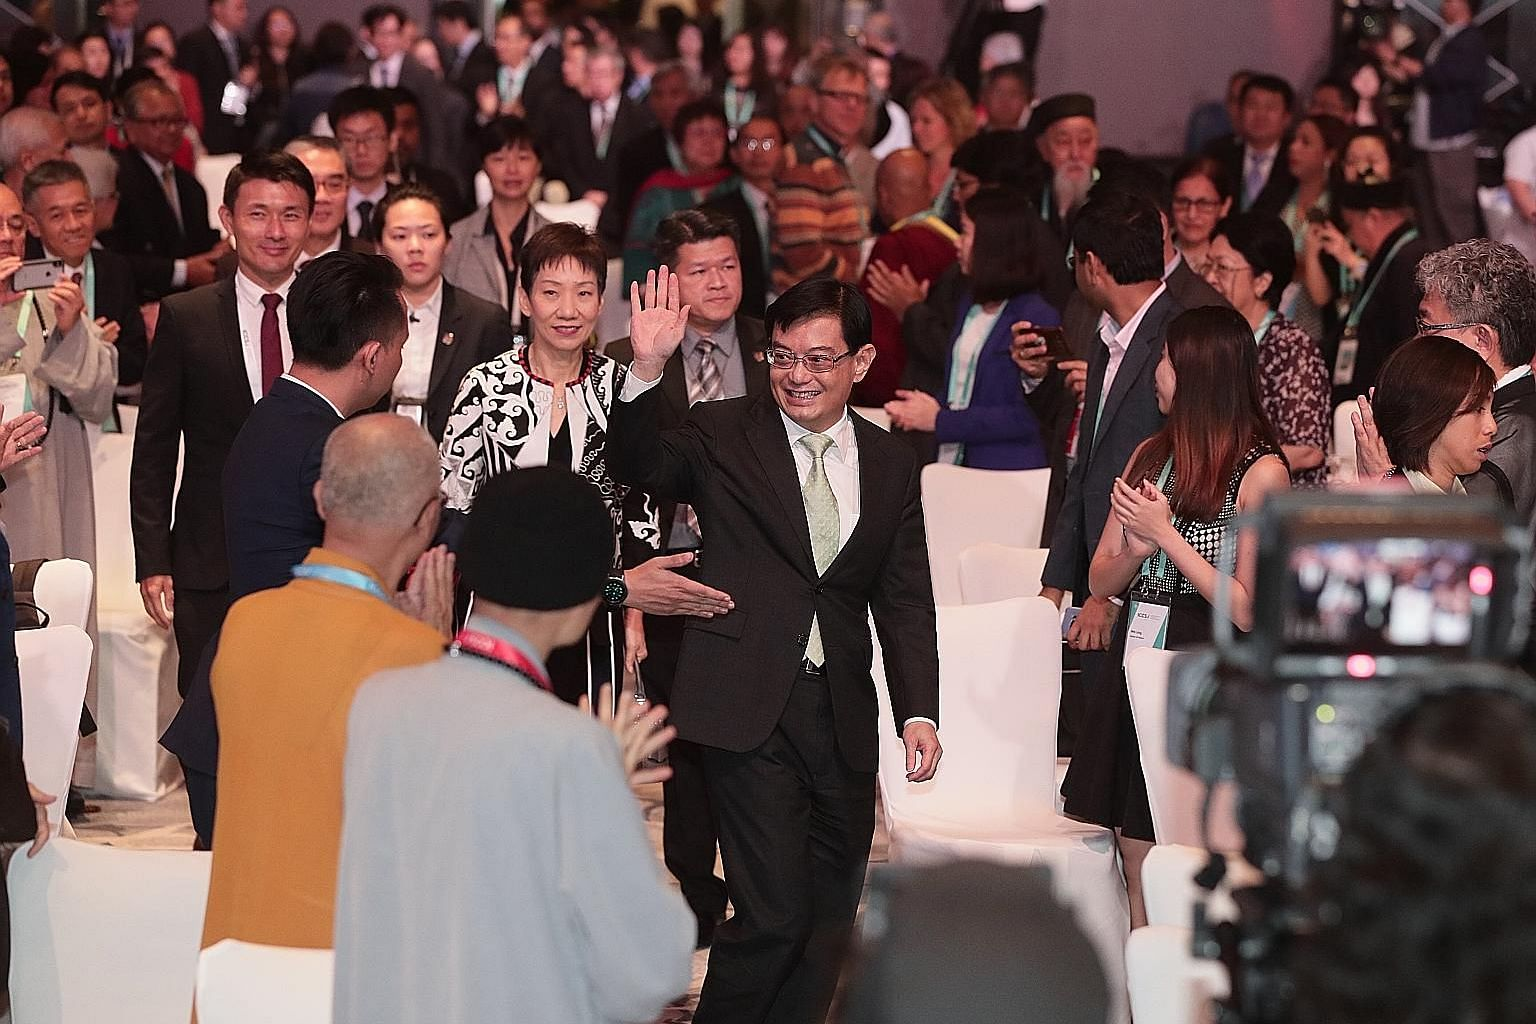 Deputy Prime Minister Heng Swee Keat arriving at the International Conference on Cohesive Societies yesterday with Minister for Culture, Community and Youth Grace Fu (beside him) and Senior Parliamentary Secretary for Culture, Community and Youth Bae